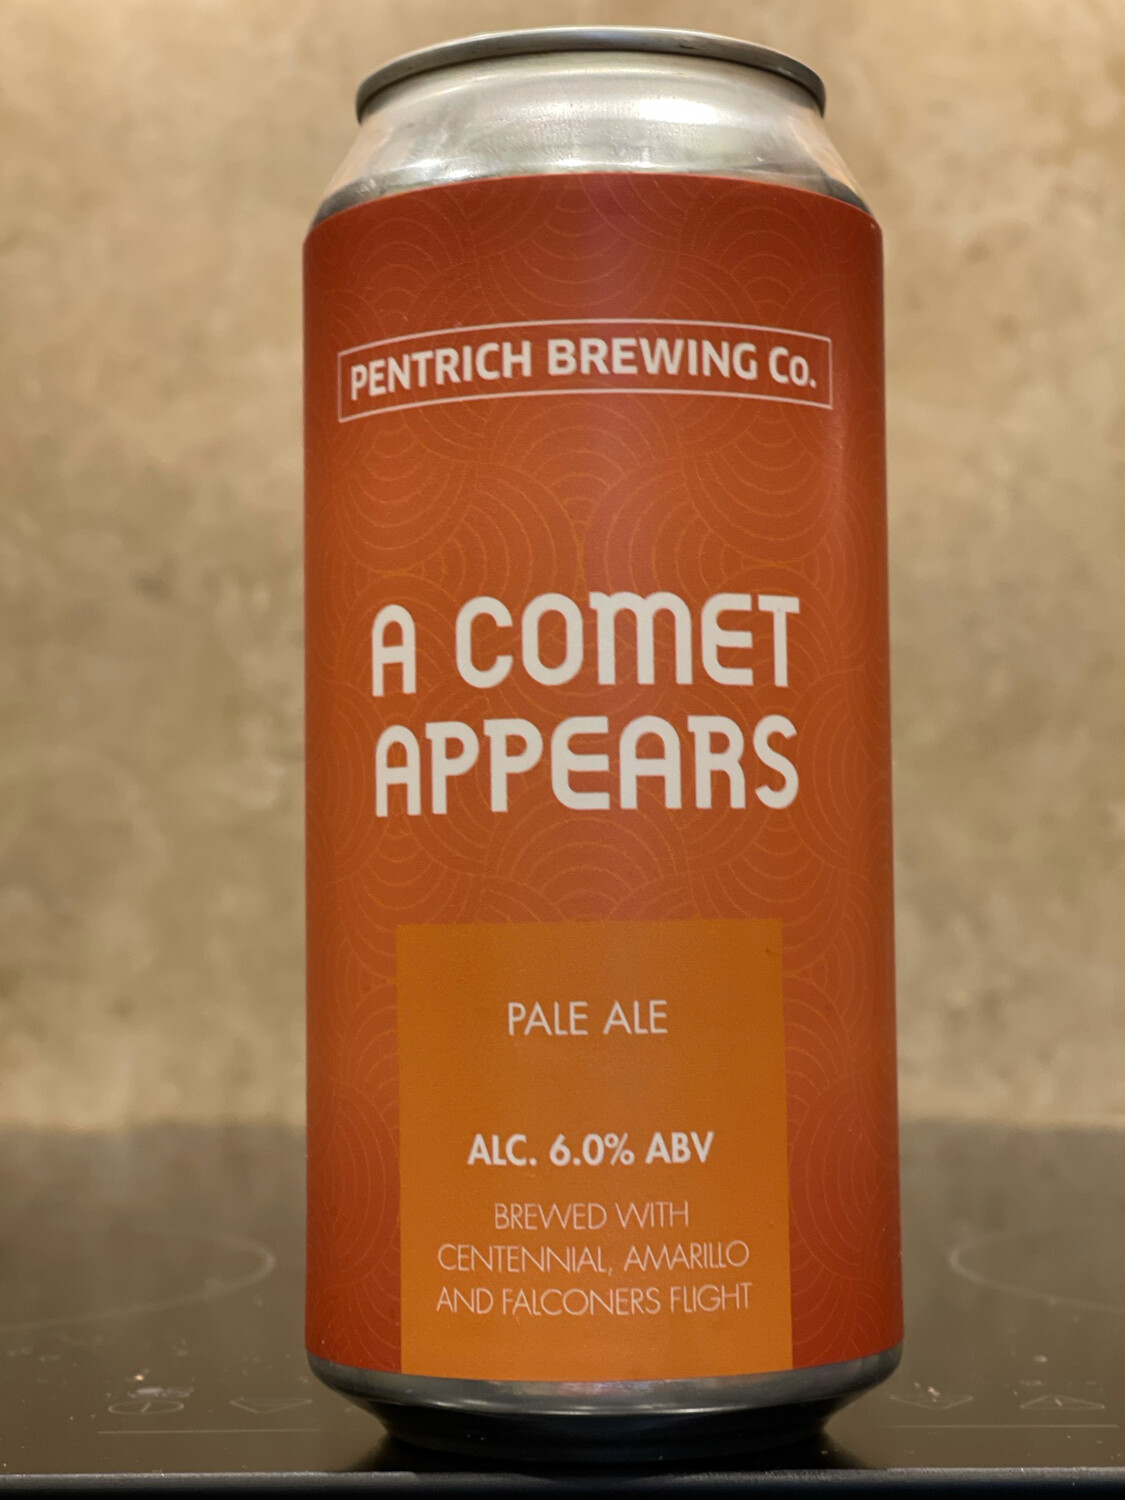 PENTRICH BREWING CO - A COMET APPEARS